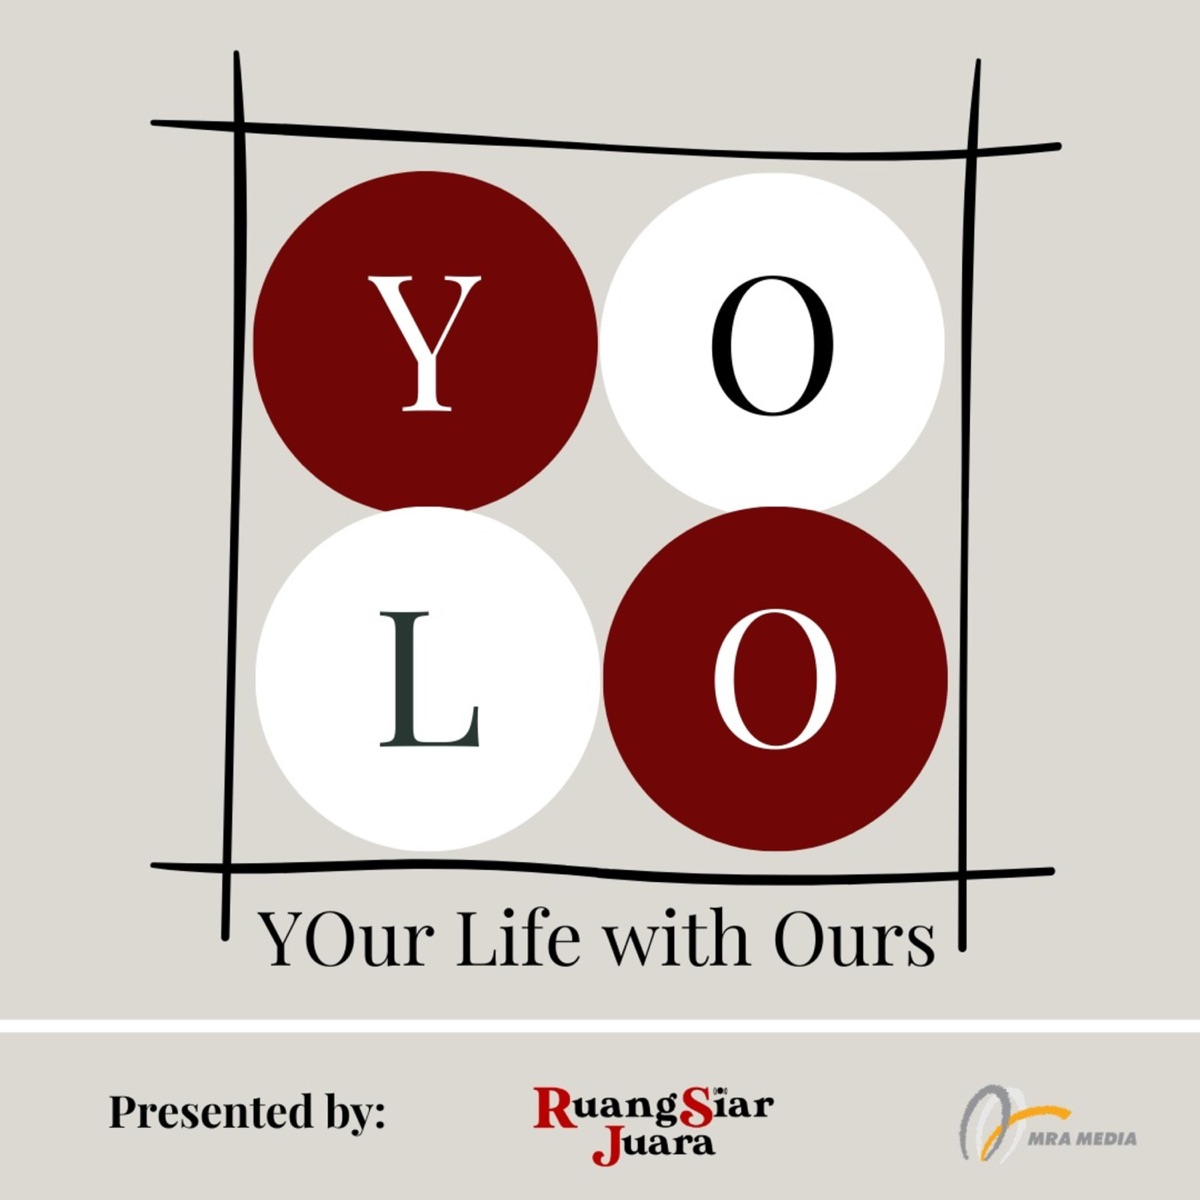 YOLO (YOur Life with Ours!)